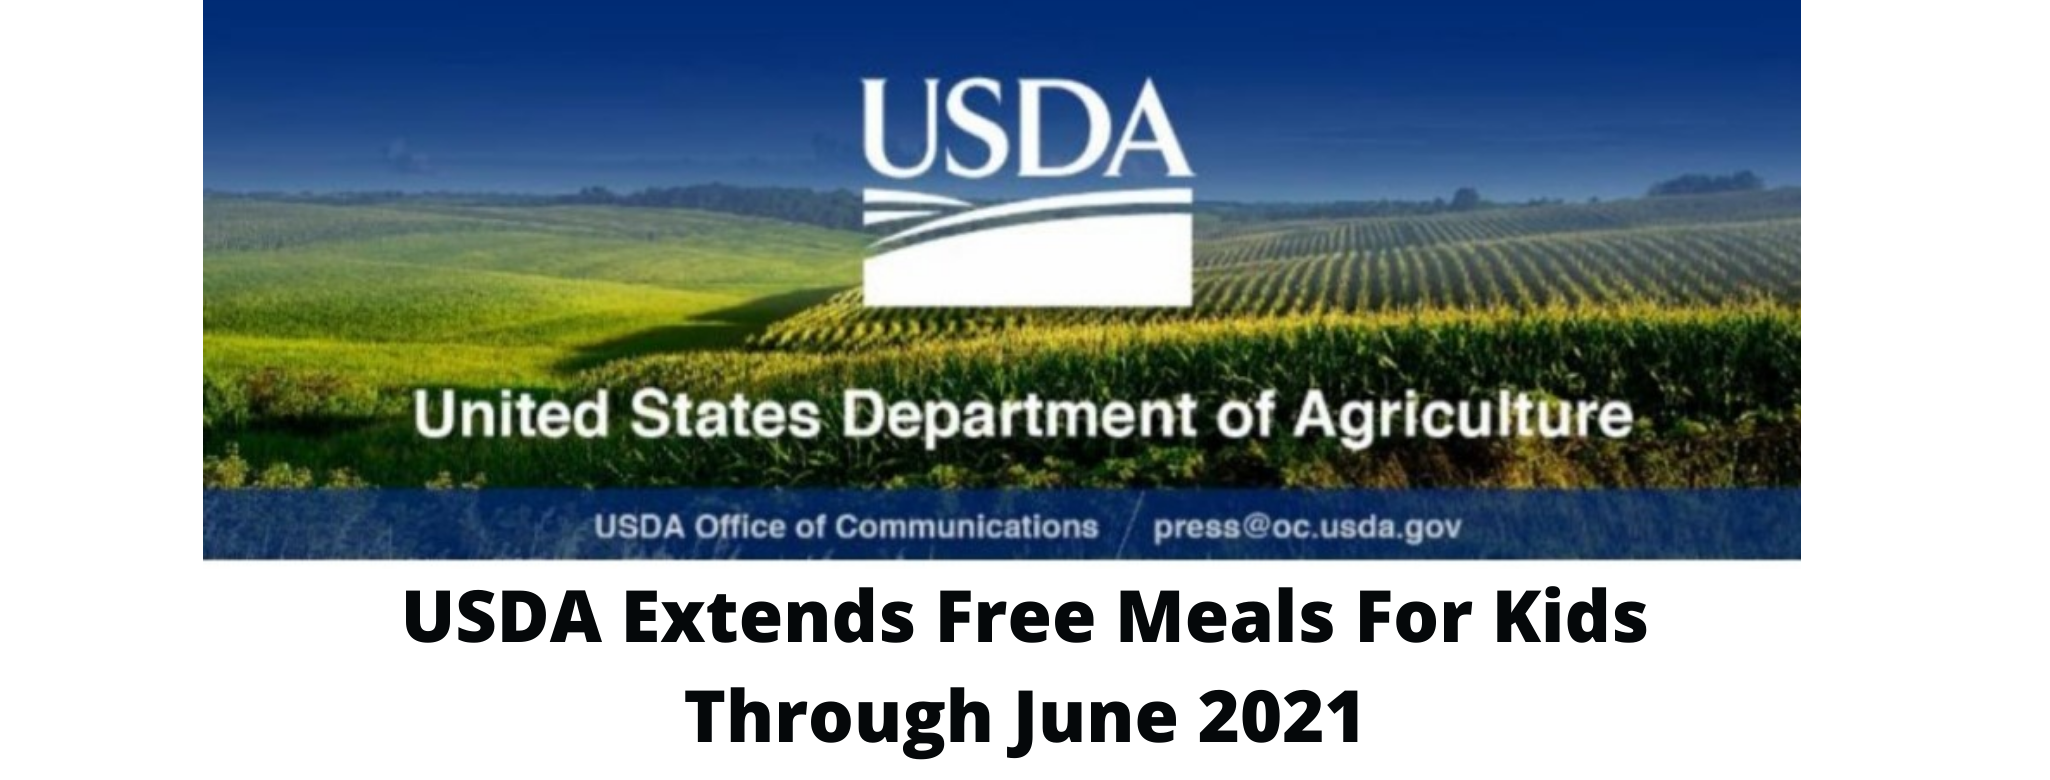 USDA Free Meals for Kids through 2021